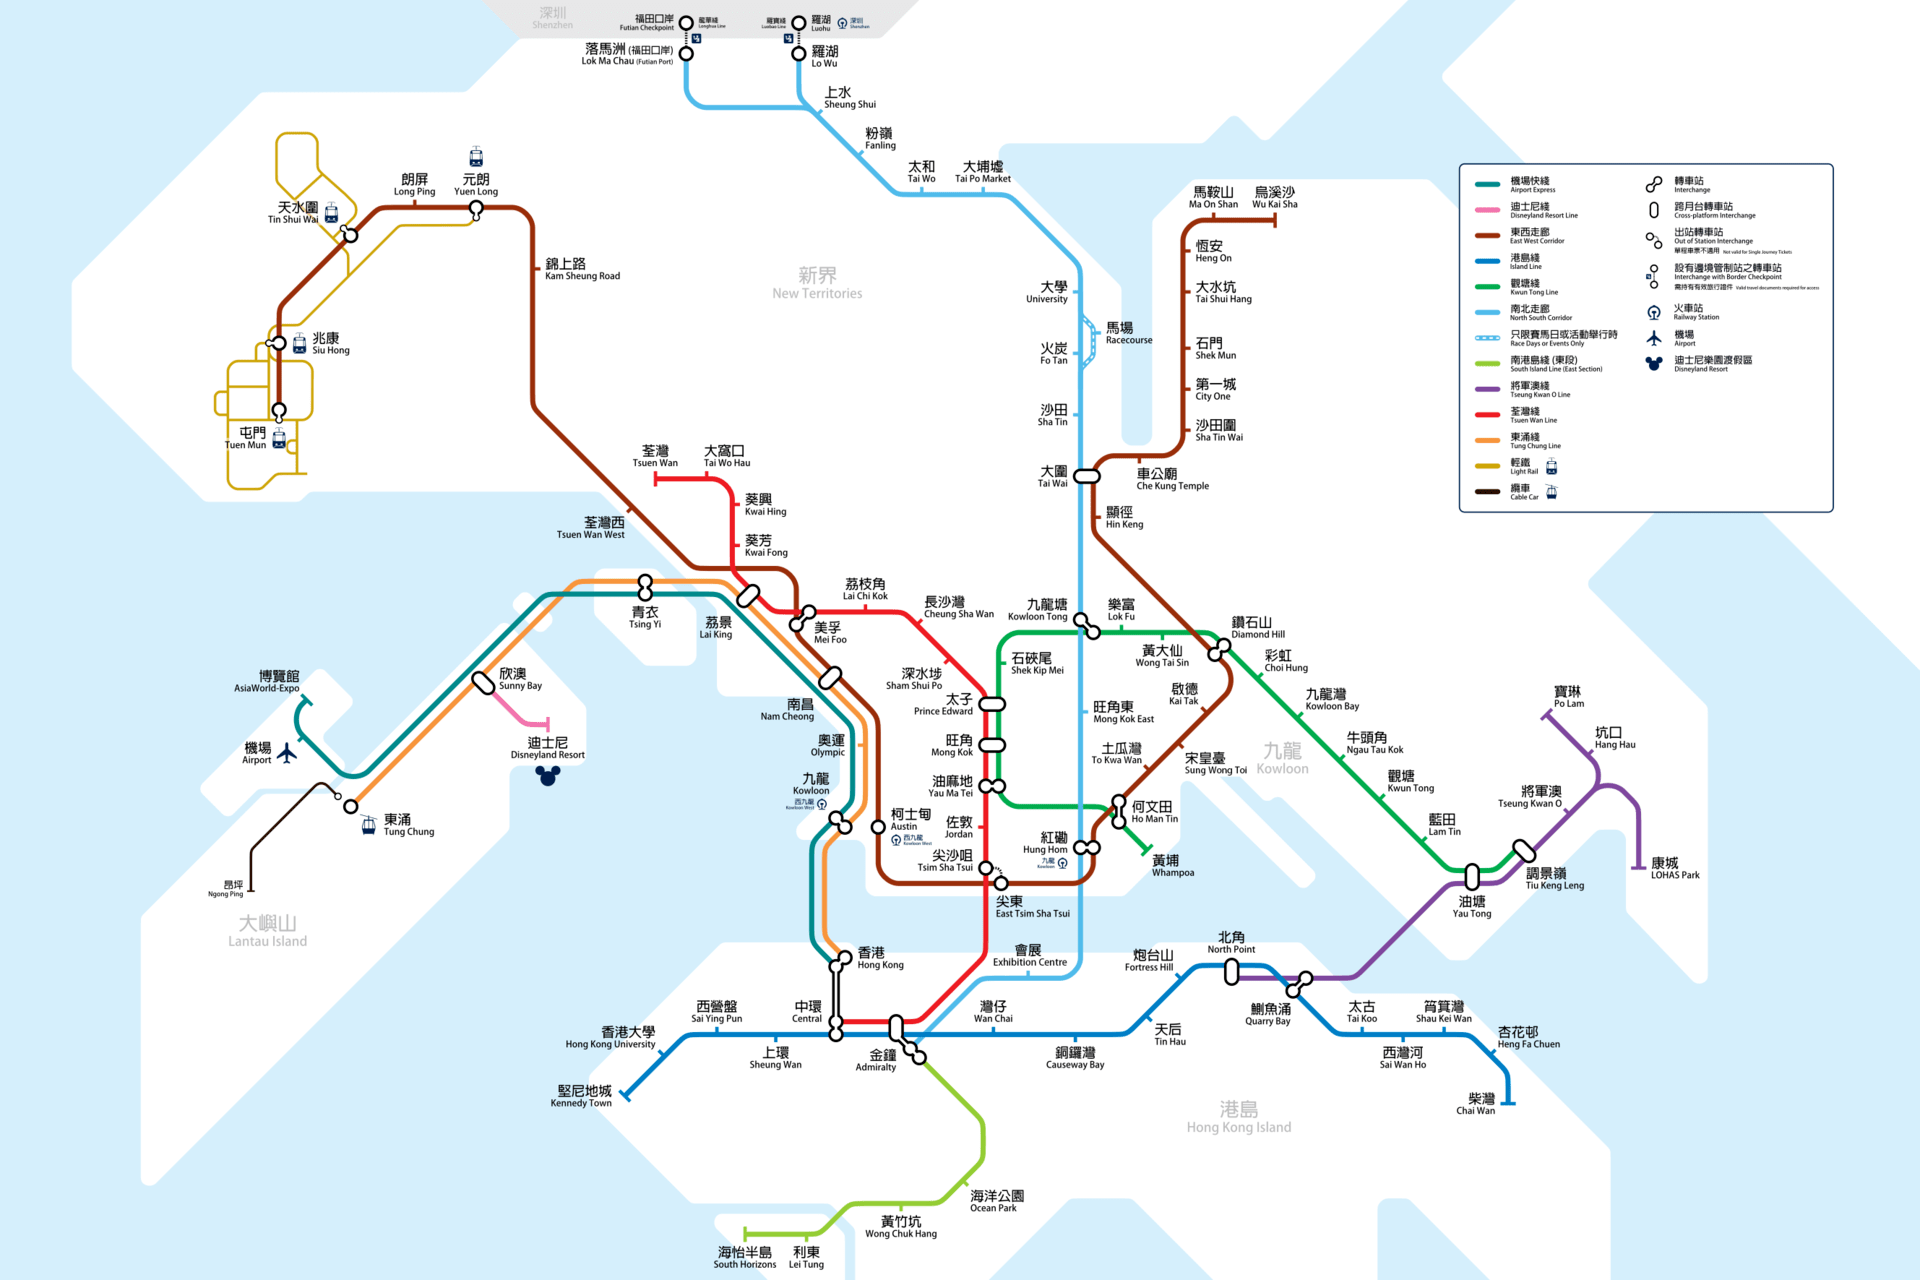 Future projects of the MTR - Wikipedia